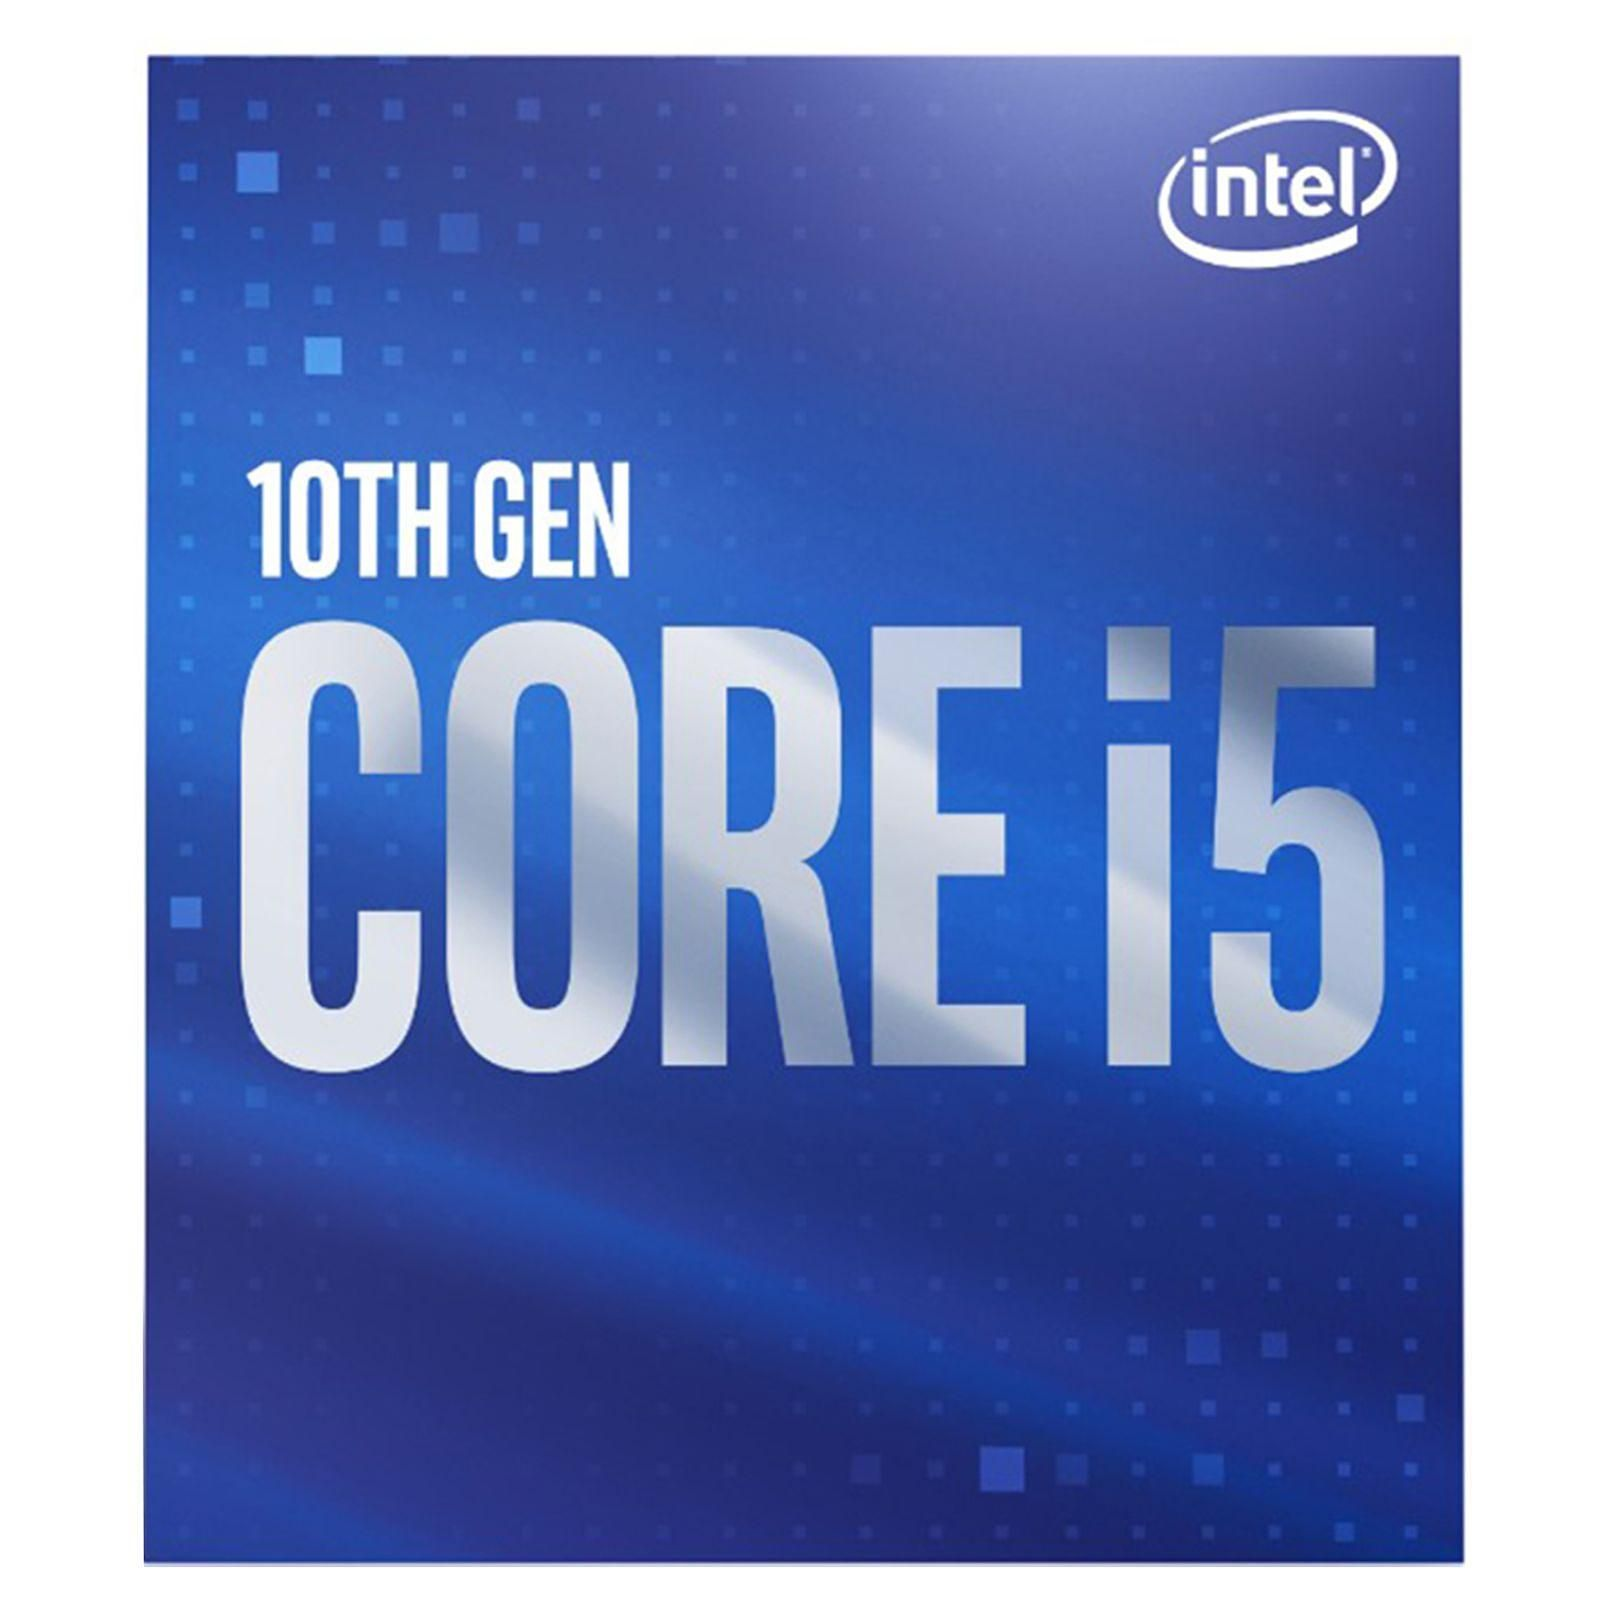 Intel Core i5-10500 - 3.1GHz - Processeur Intel - Cybertek.fr - 2